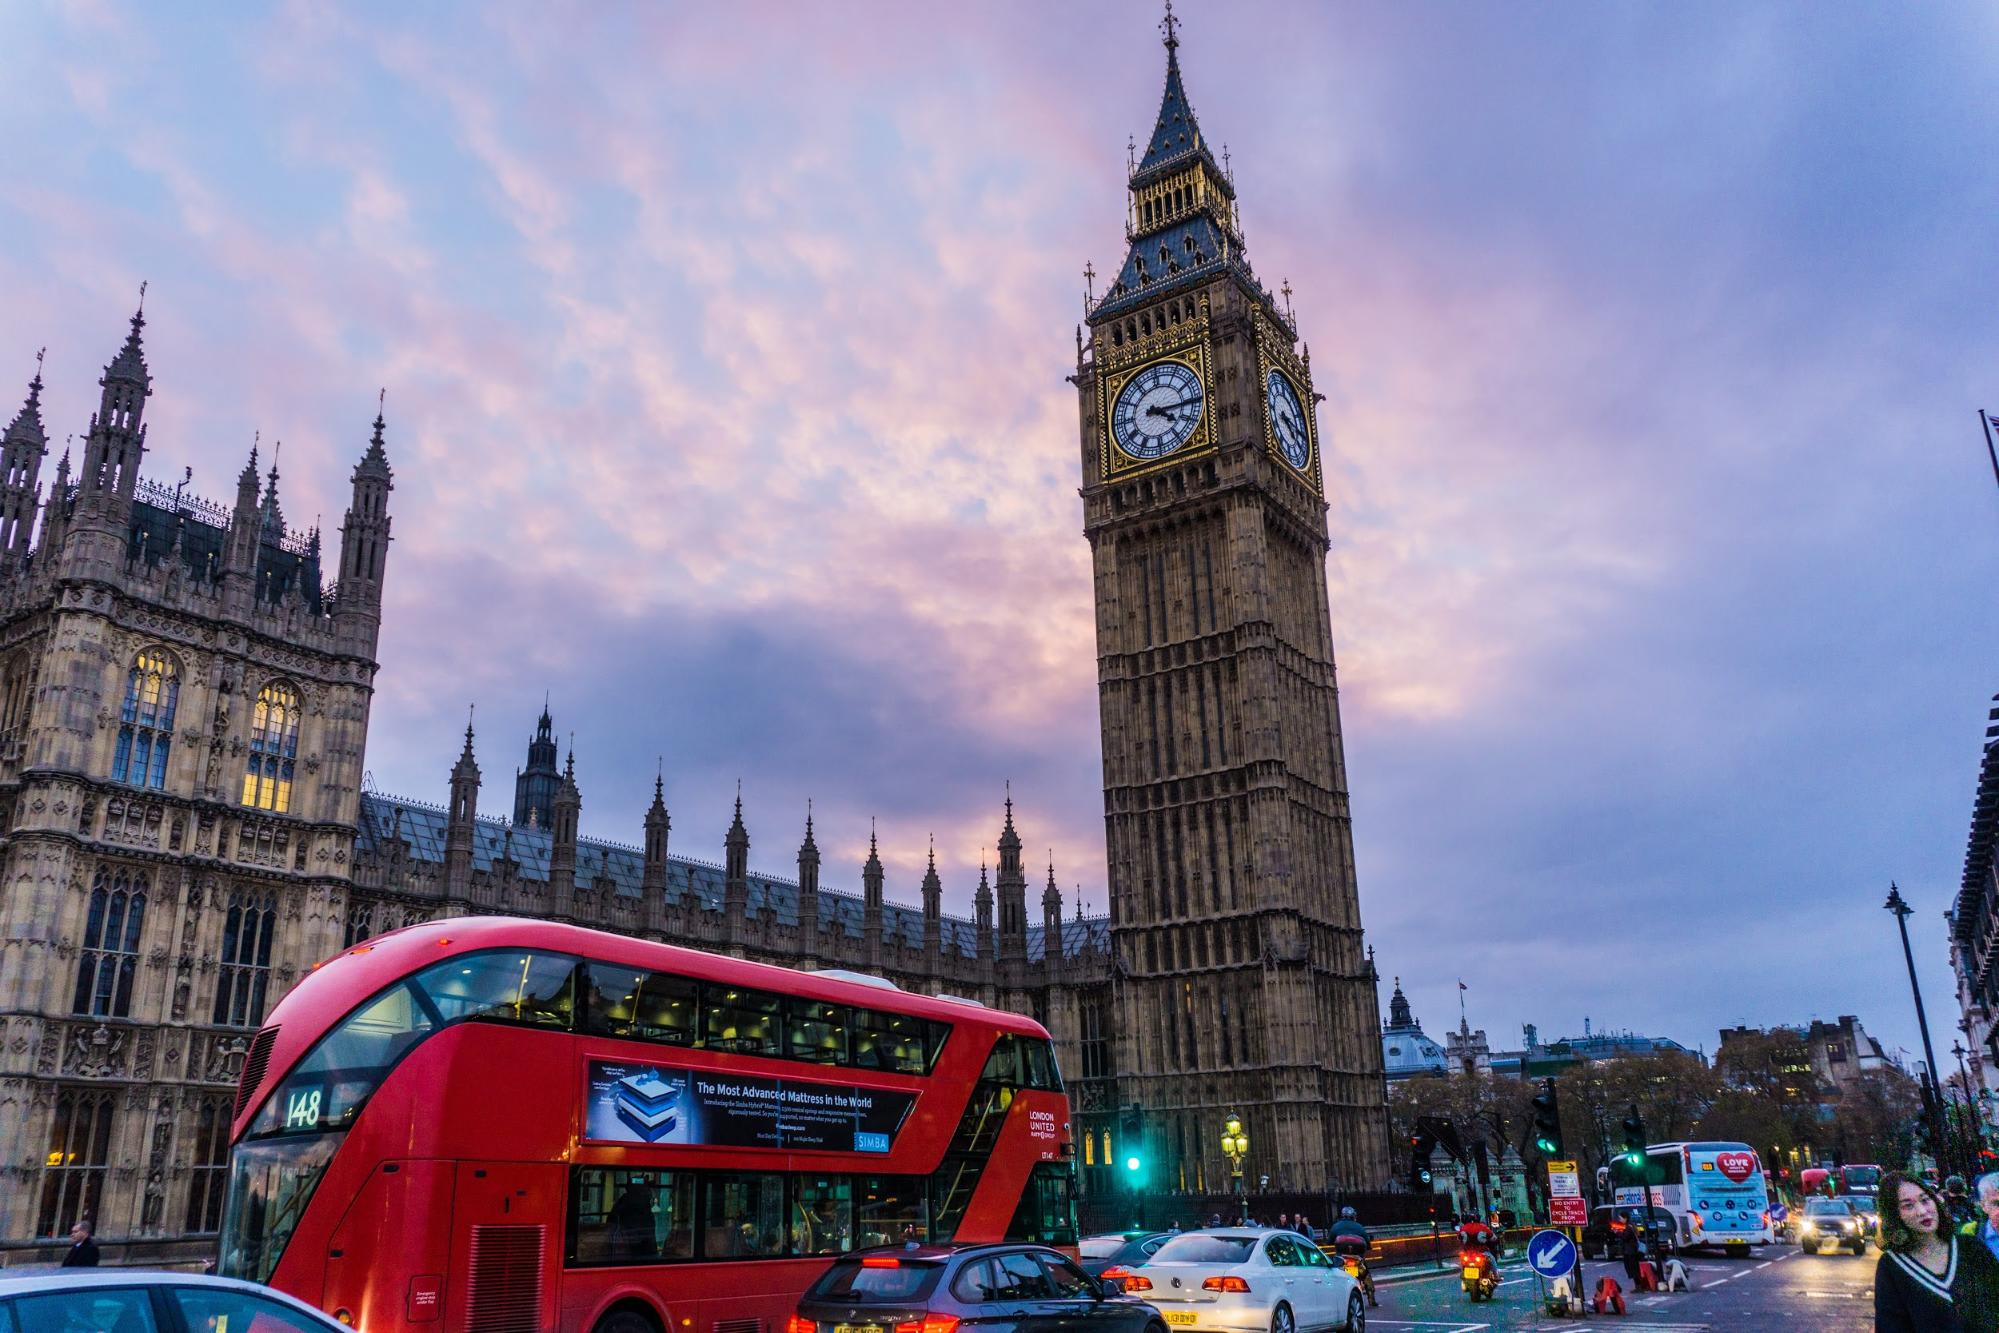 New York To London UK $327 Return